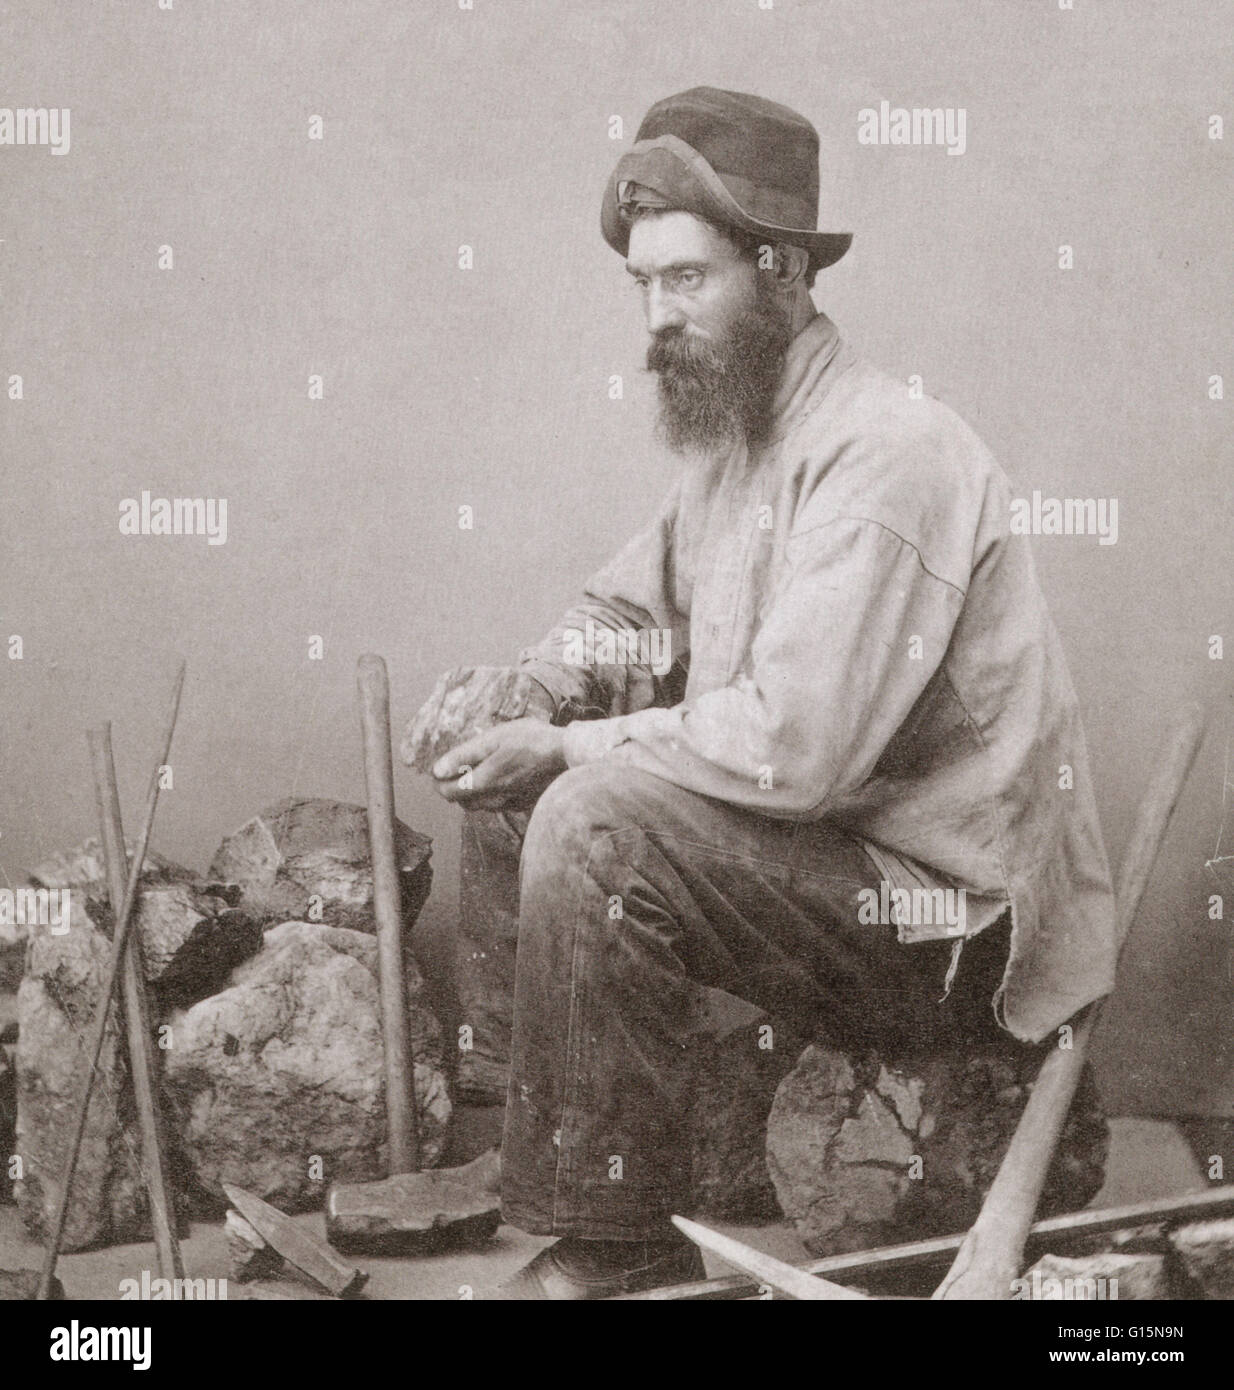 Walter S. Corwin, gold miner, photographed by E. H. Train, Helena, Montana. Montana's first period of growth - Stock Image